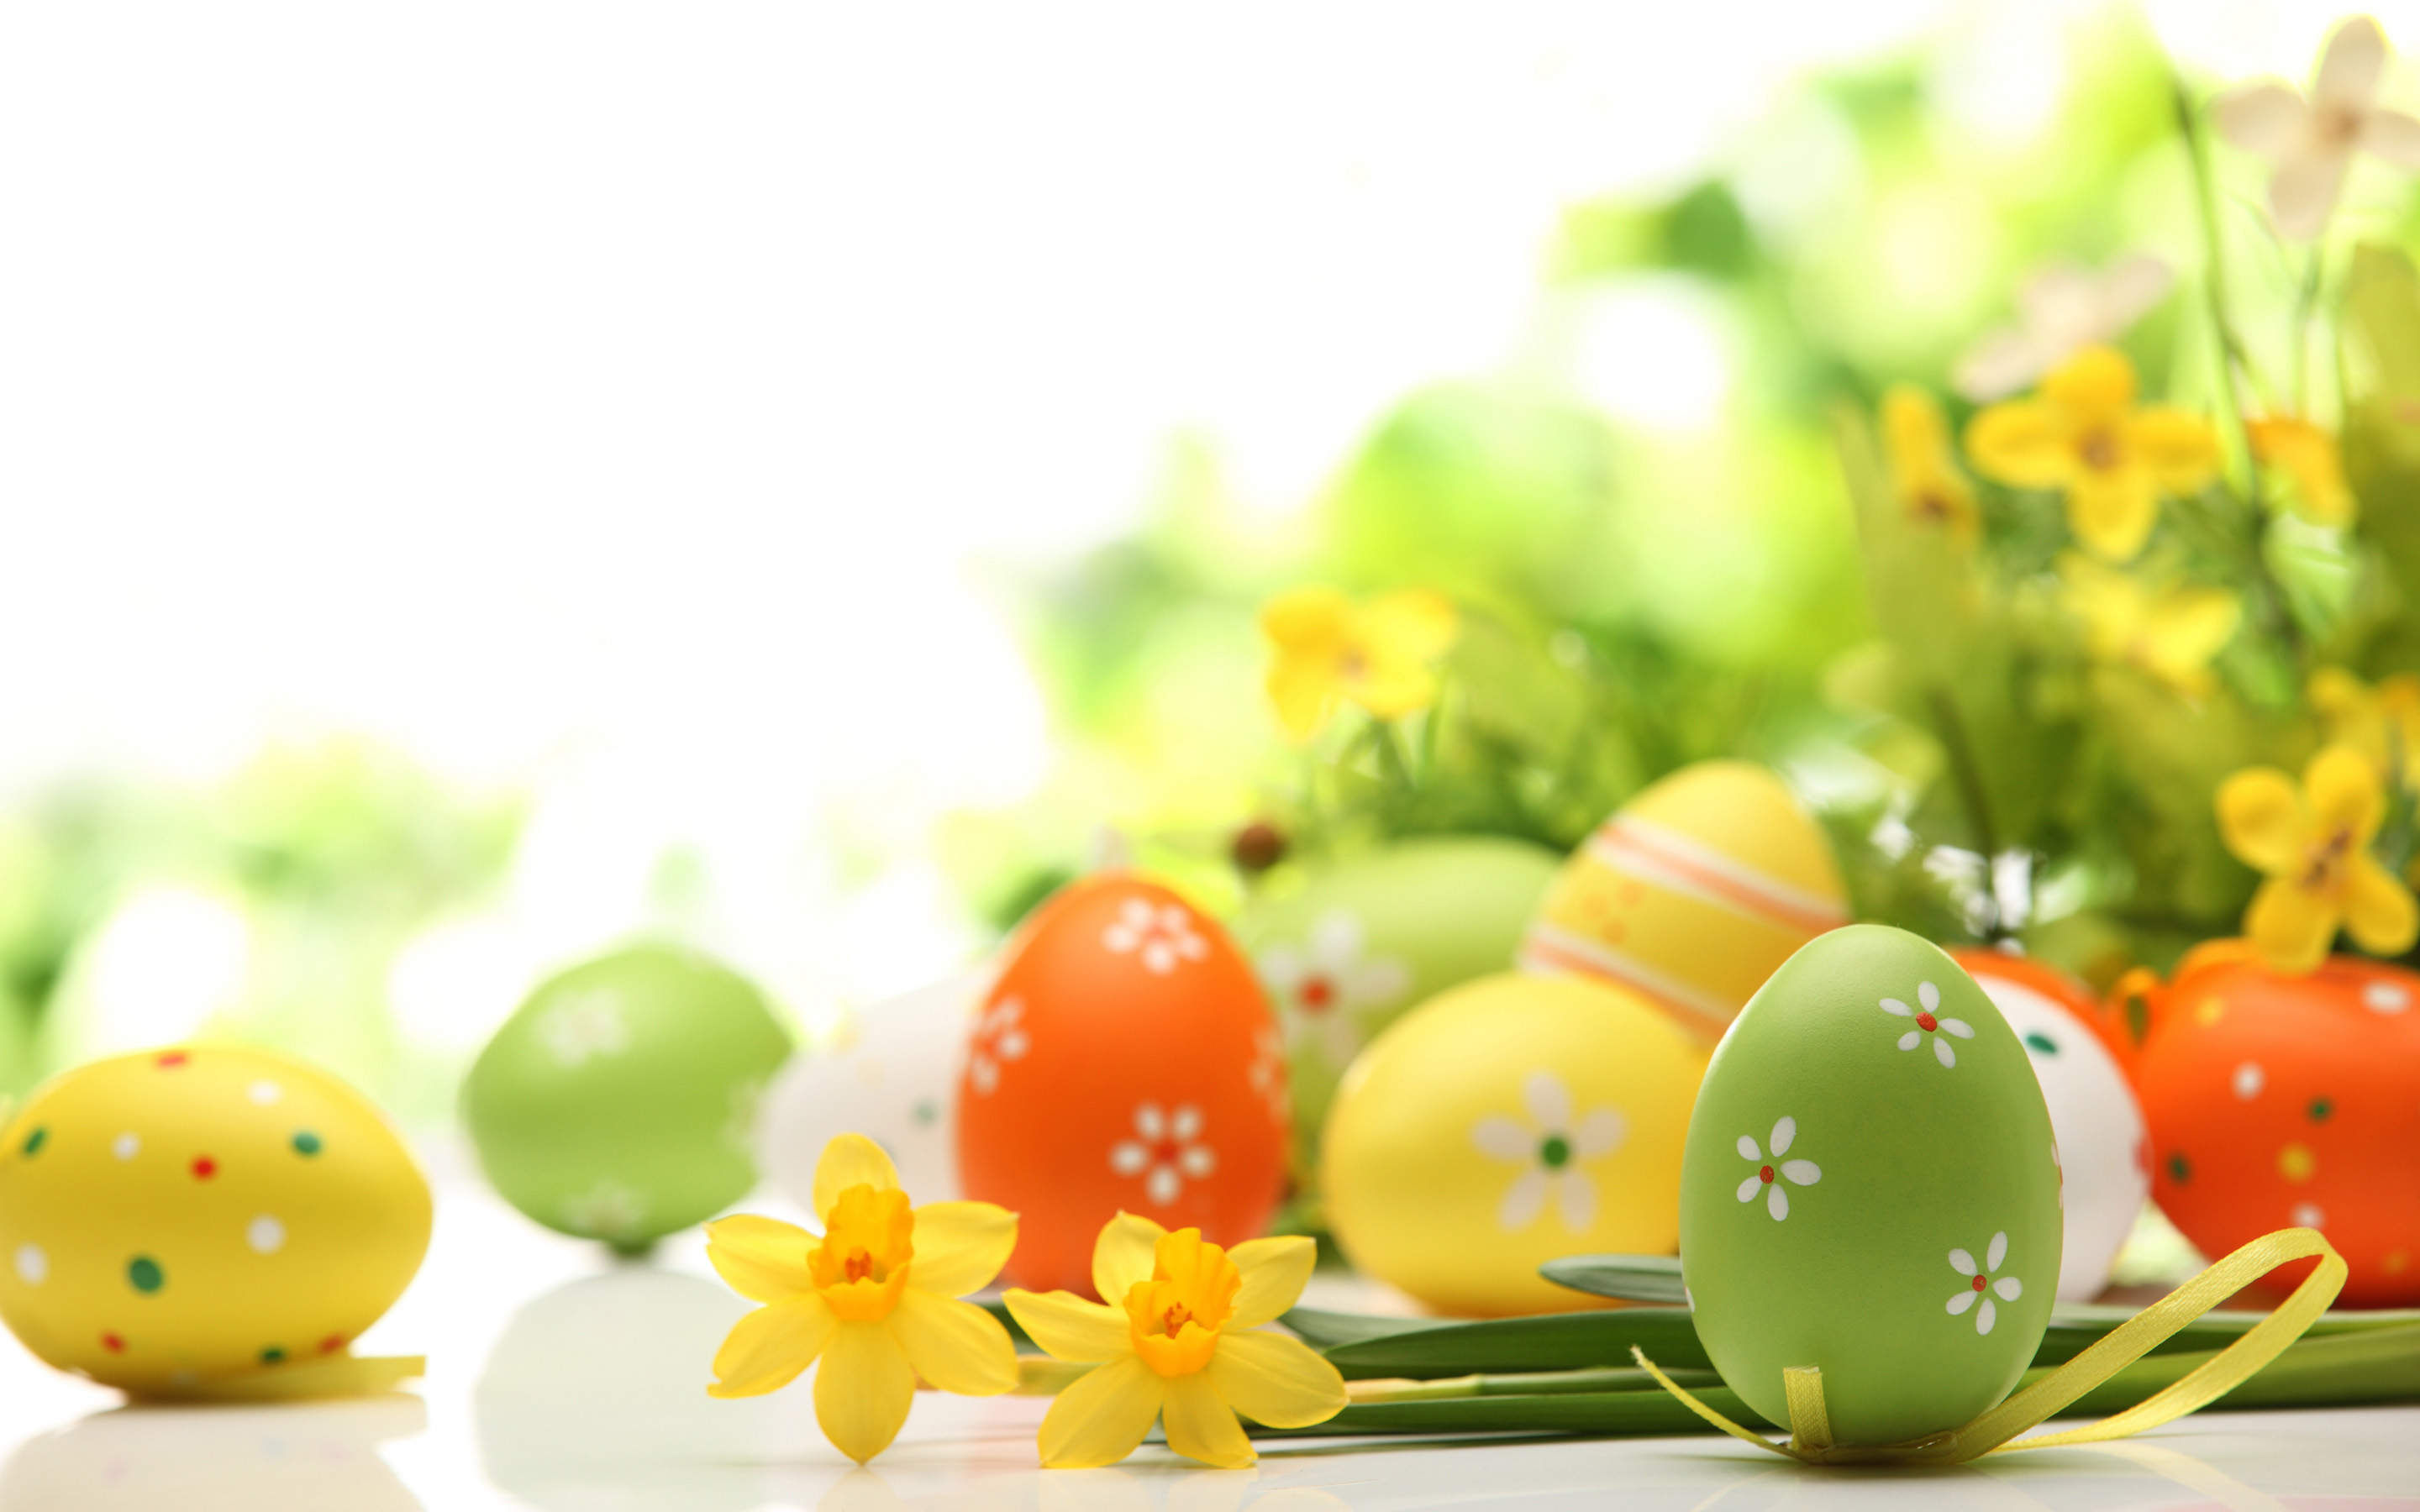 Easter Backgrounds For Your Laptop (16)